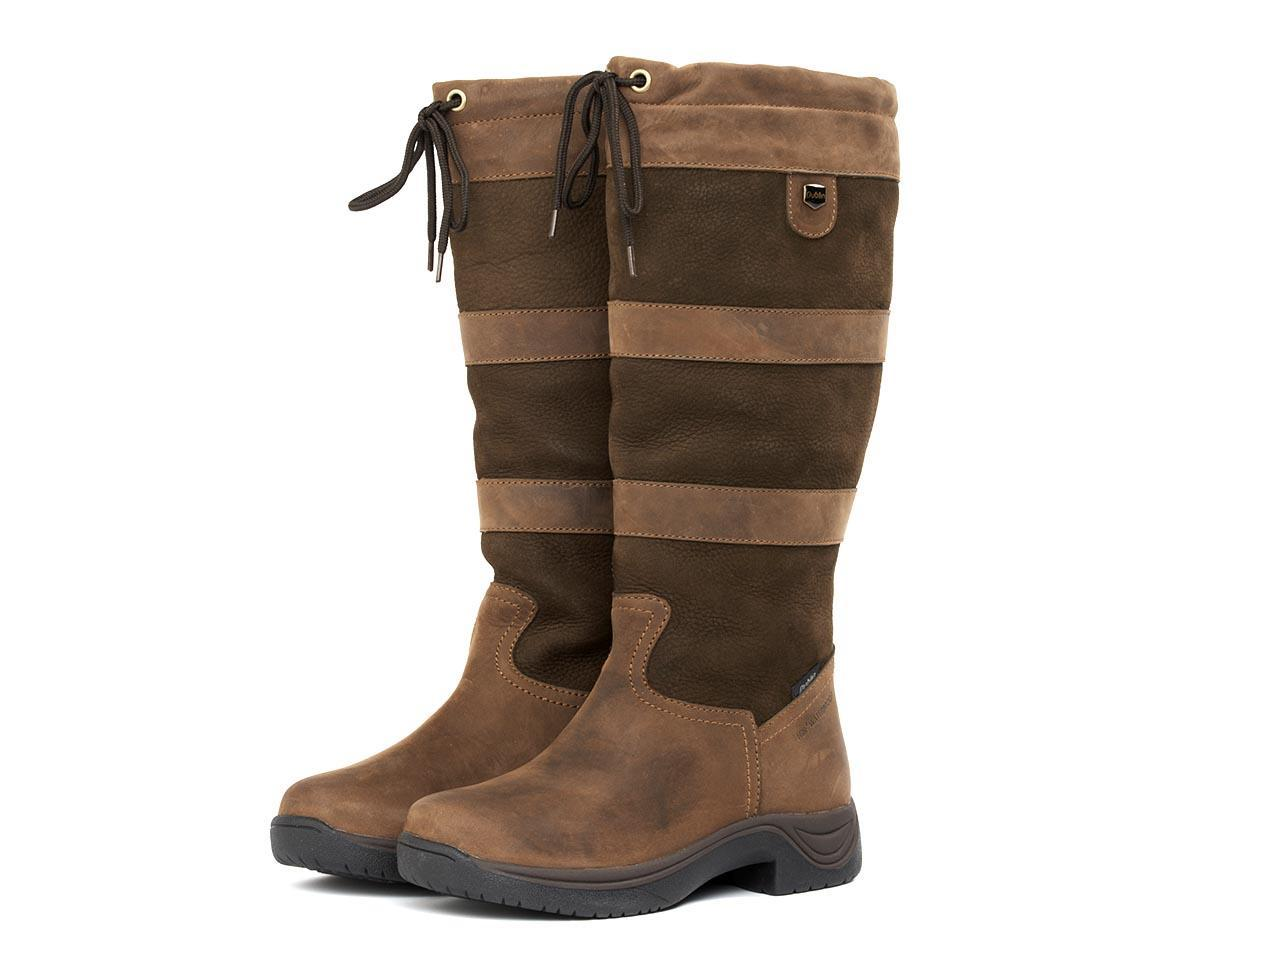 Dublin-River-Plaid-Waterproof-Country-Boots-II-Brown-Ladies-with-Elastic-Gusset